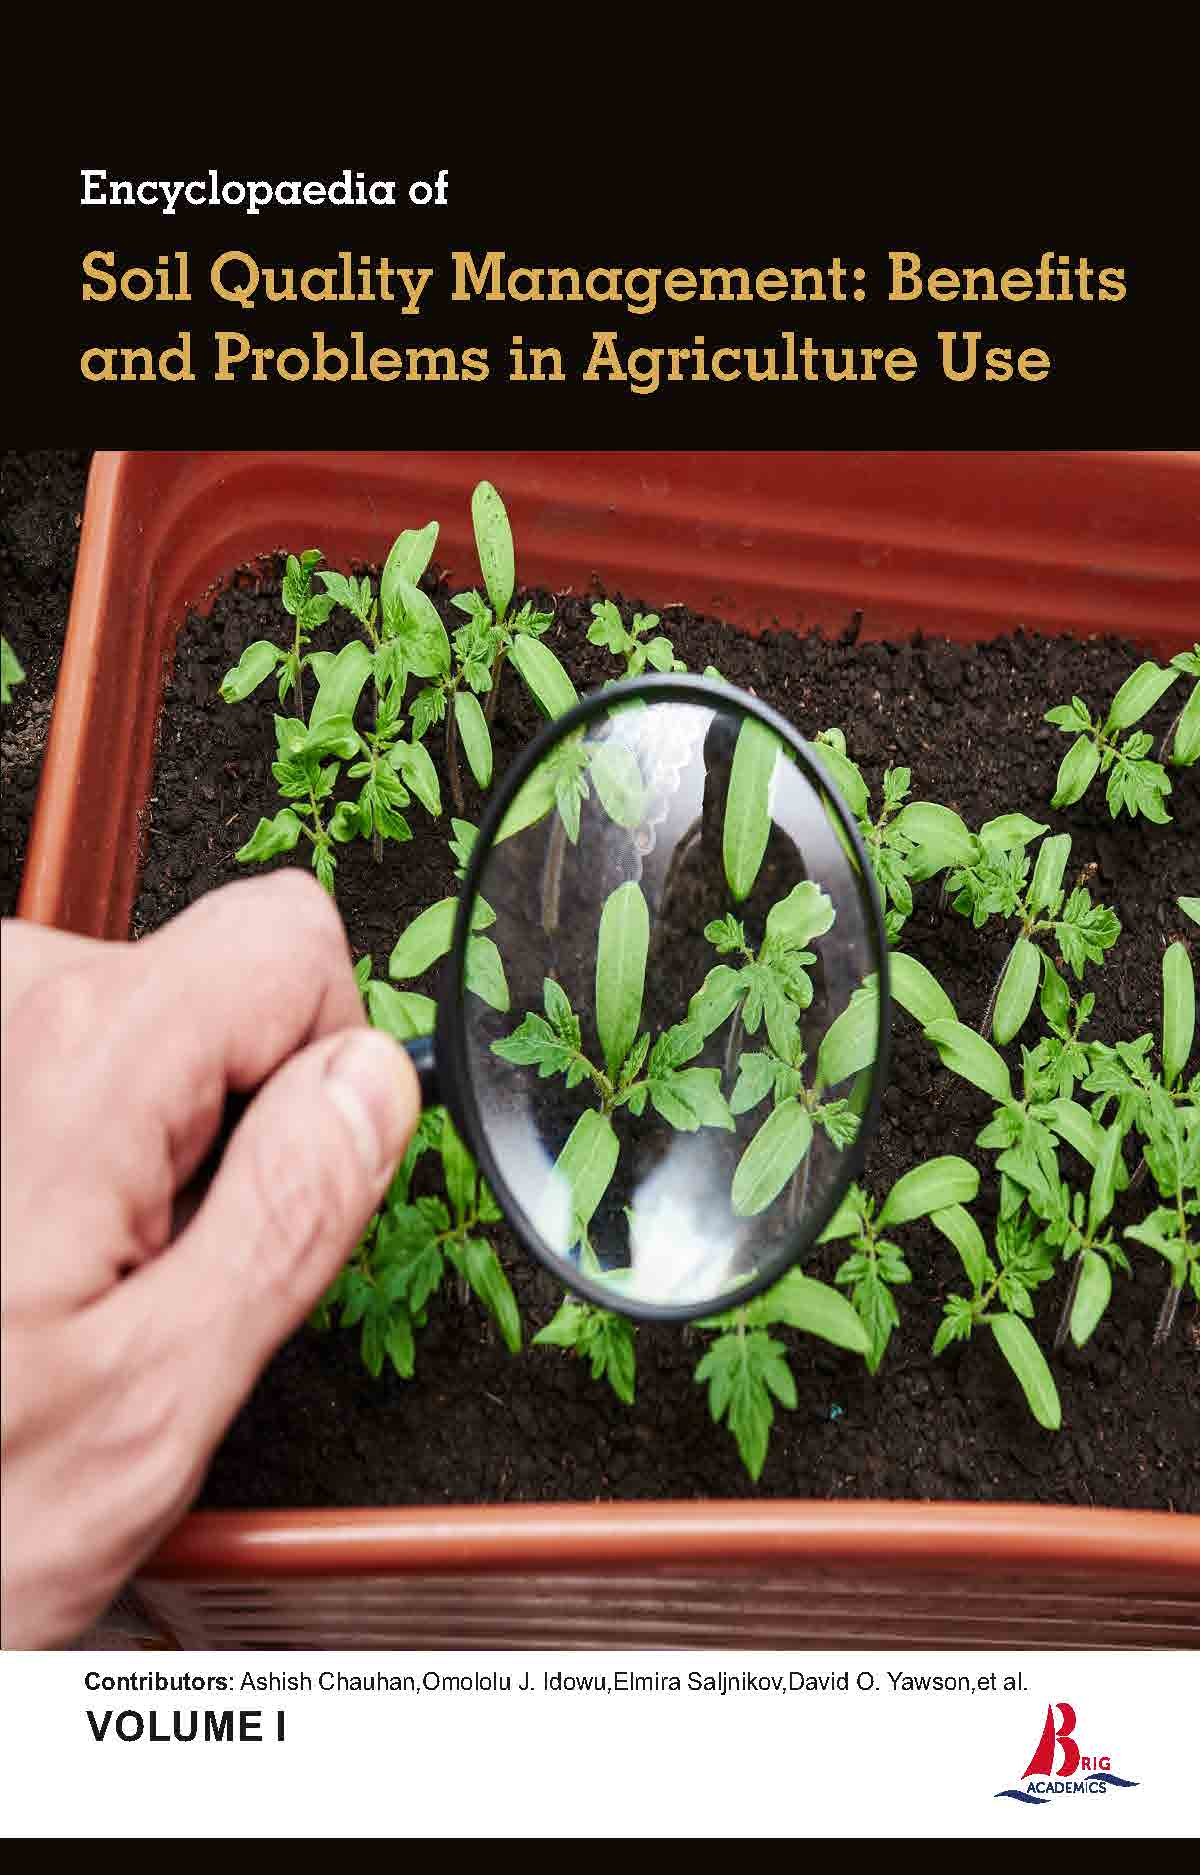 Encyclopaedia of Soil Quality Management: Benefits and Problems in Agriculture Use (4 Volumes)